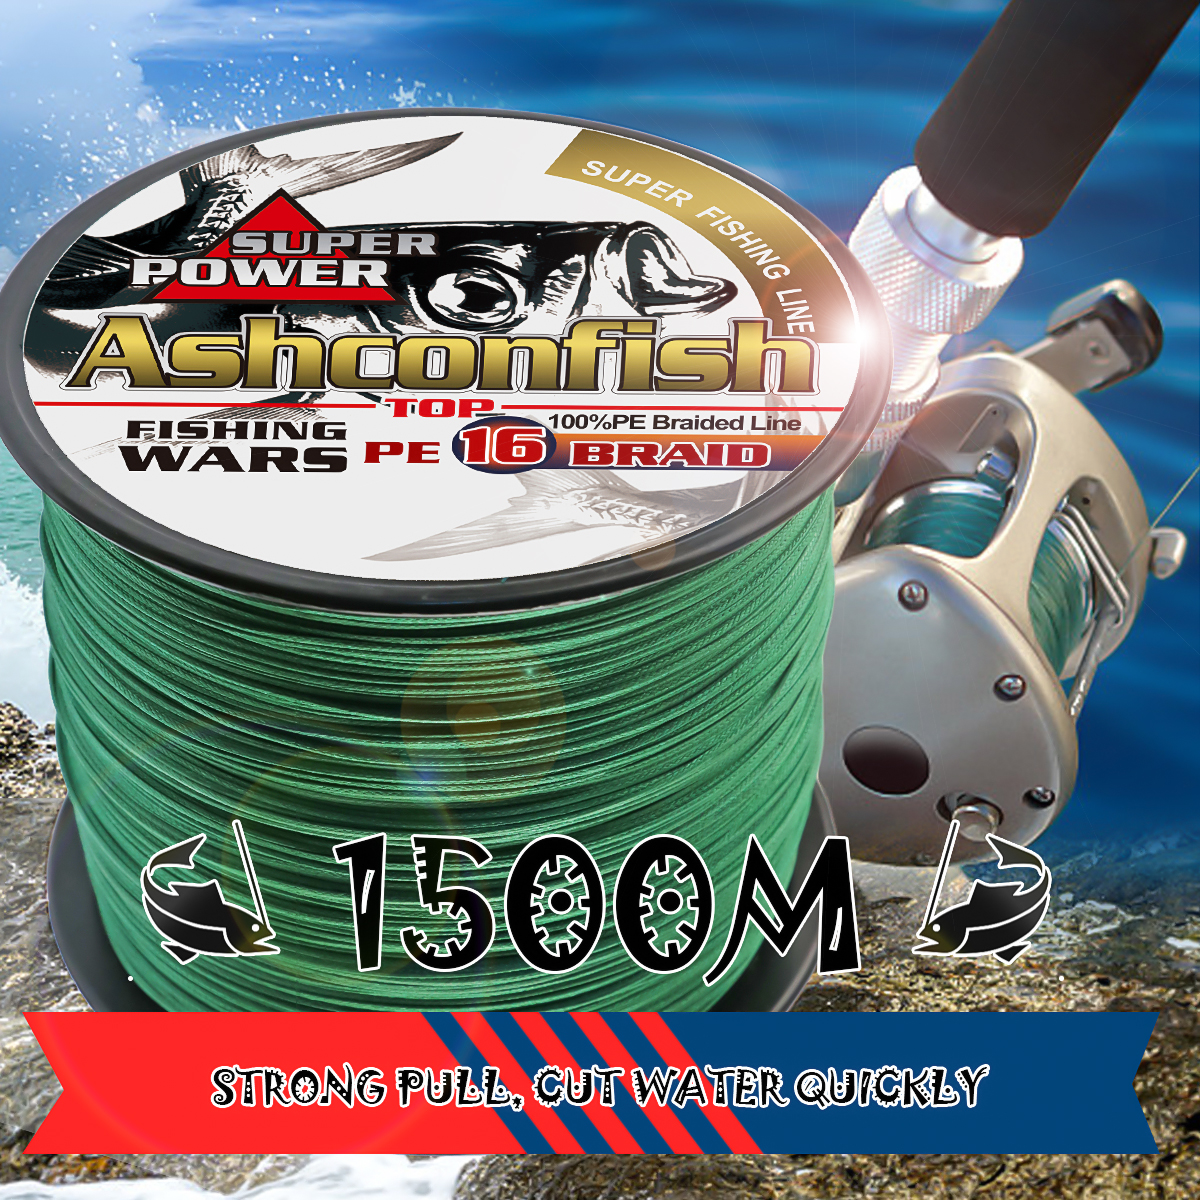 16 Strands super strong braided fishing line pe hollowcore 1500M wire carp fishing saltwater 20 30 60 130 150 200 300 400 500LBS - 4